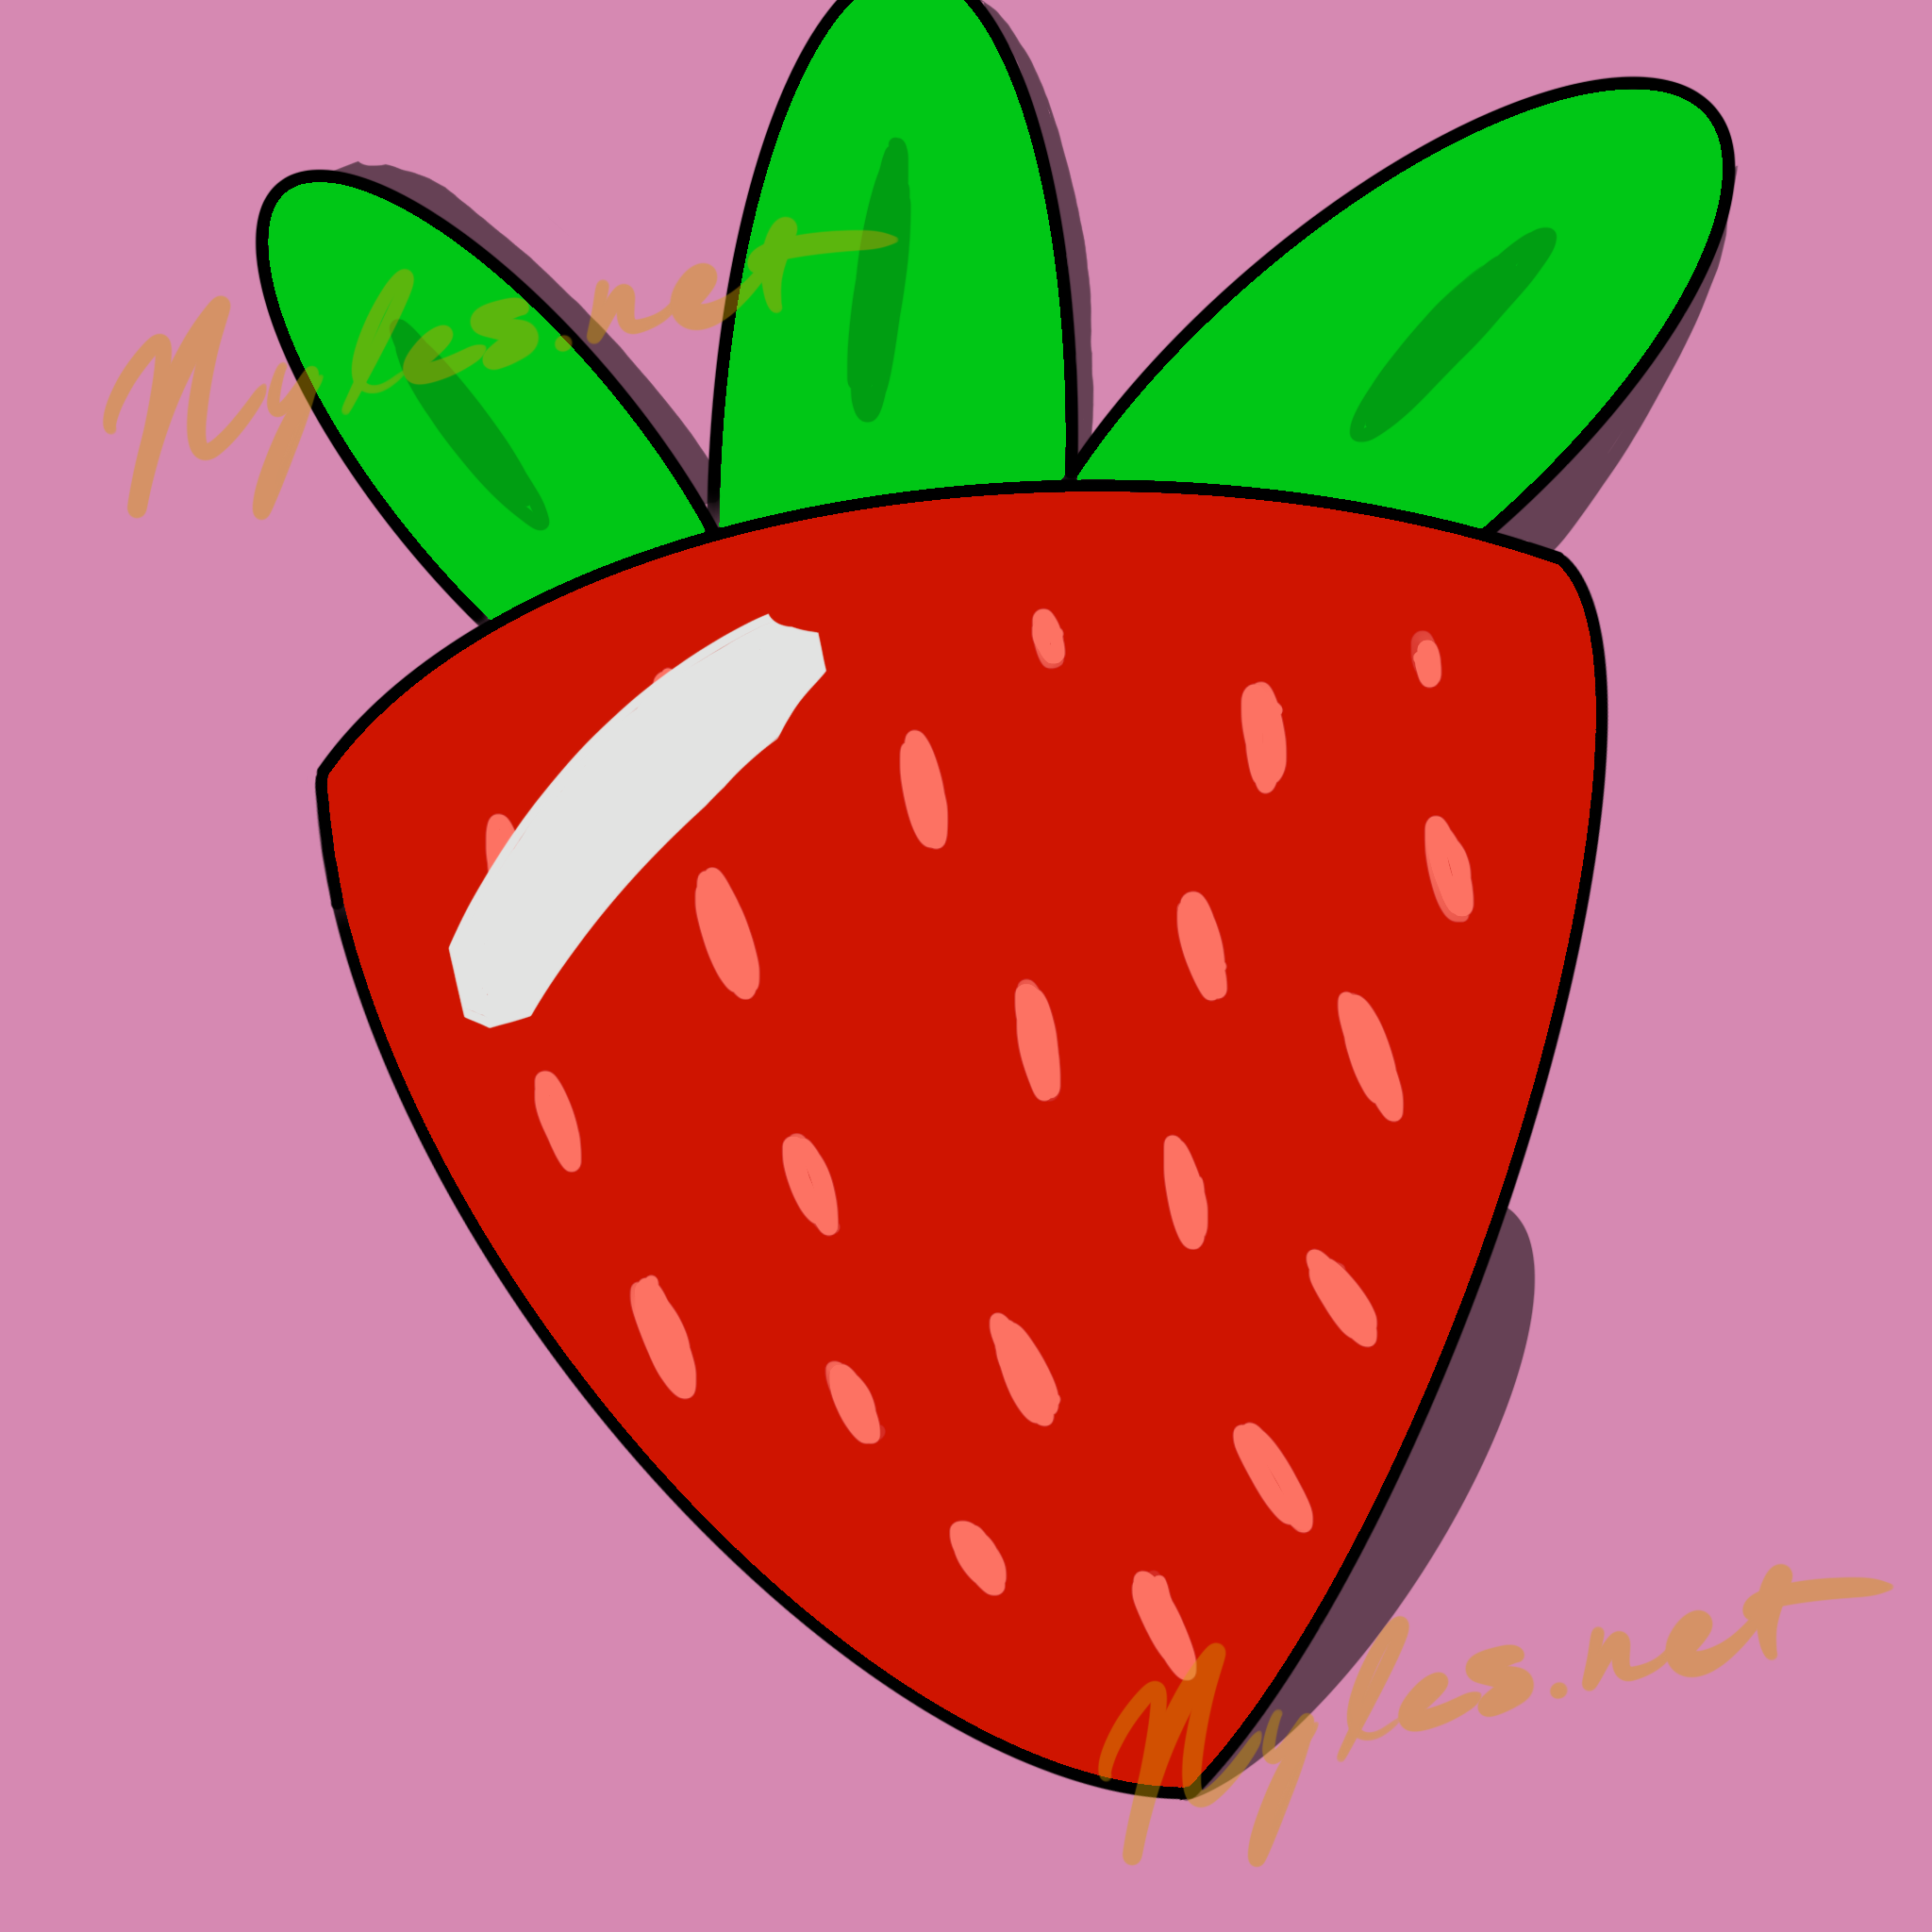 2D Digial Drawing of a cartoon strawberry that appears to be candied